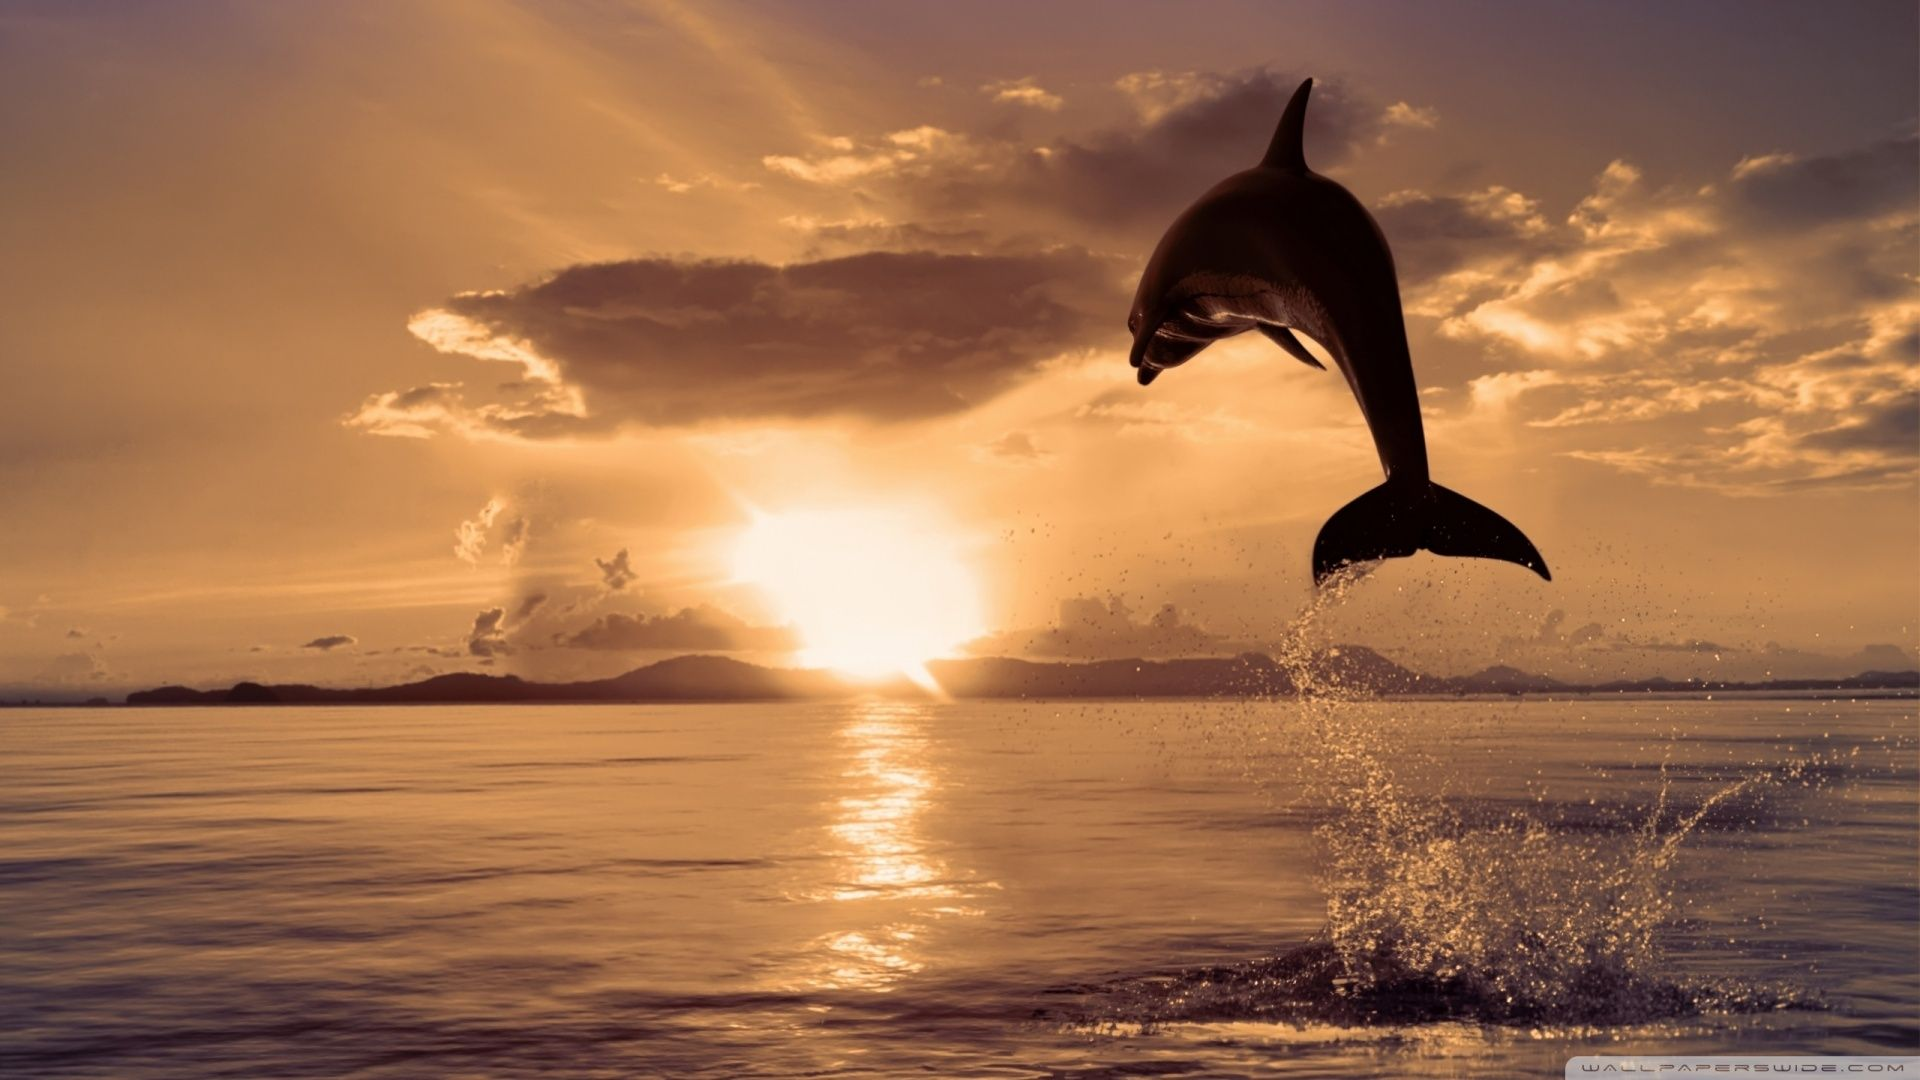 Dolphin Wallpapers Widescreen # 3XIIFNV - 4USkY